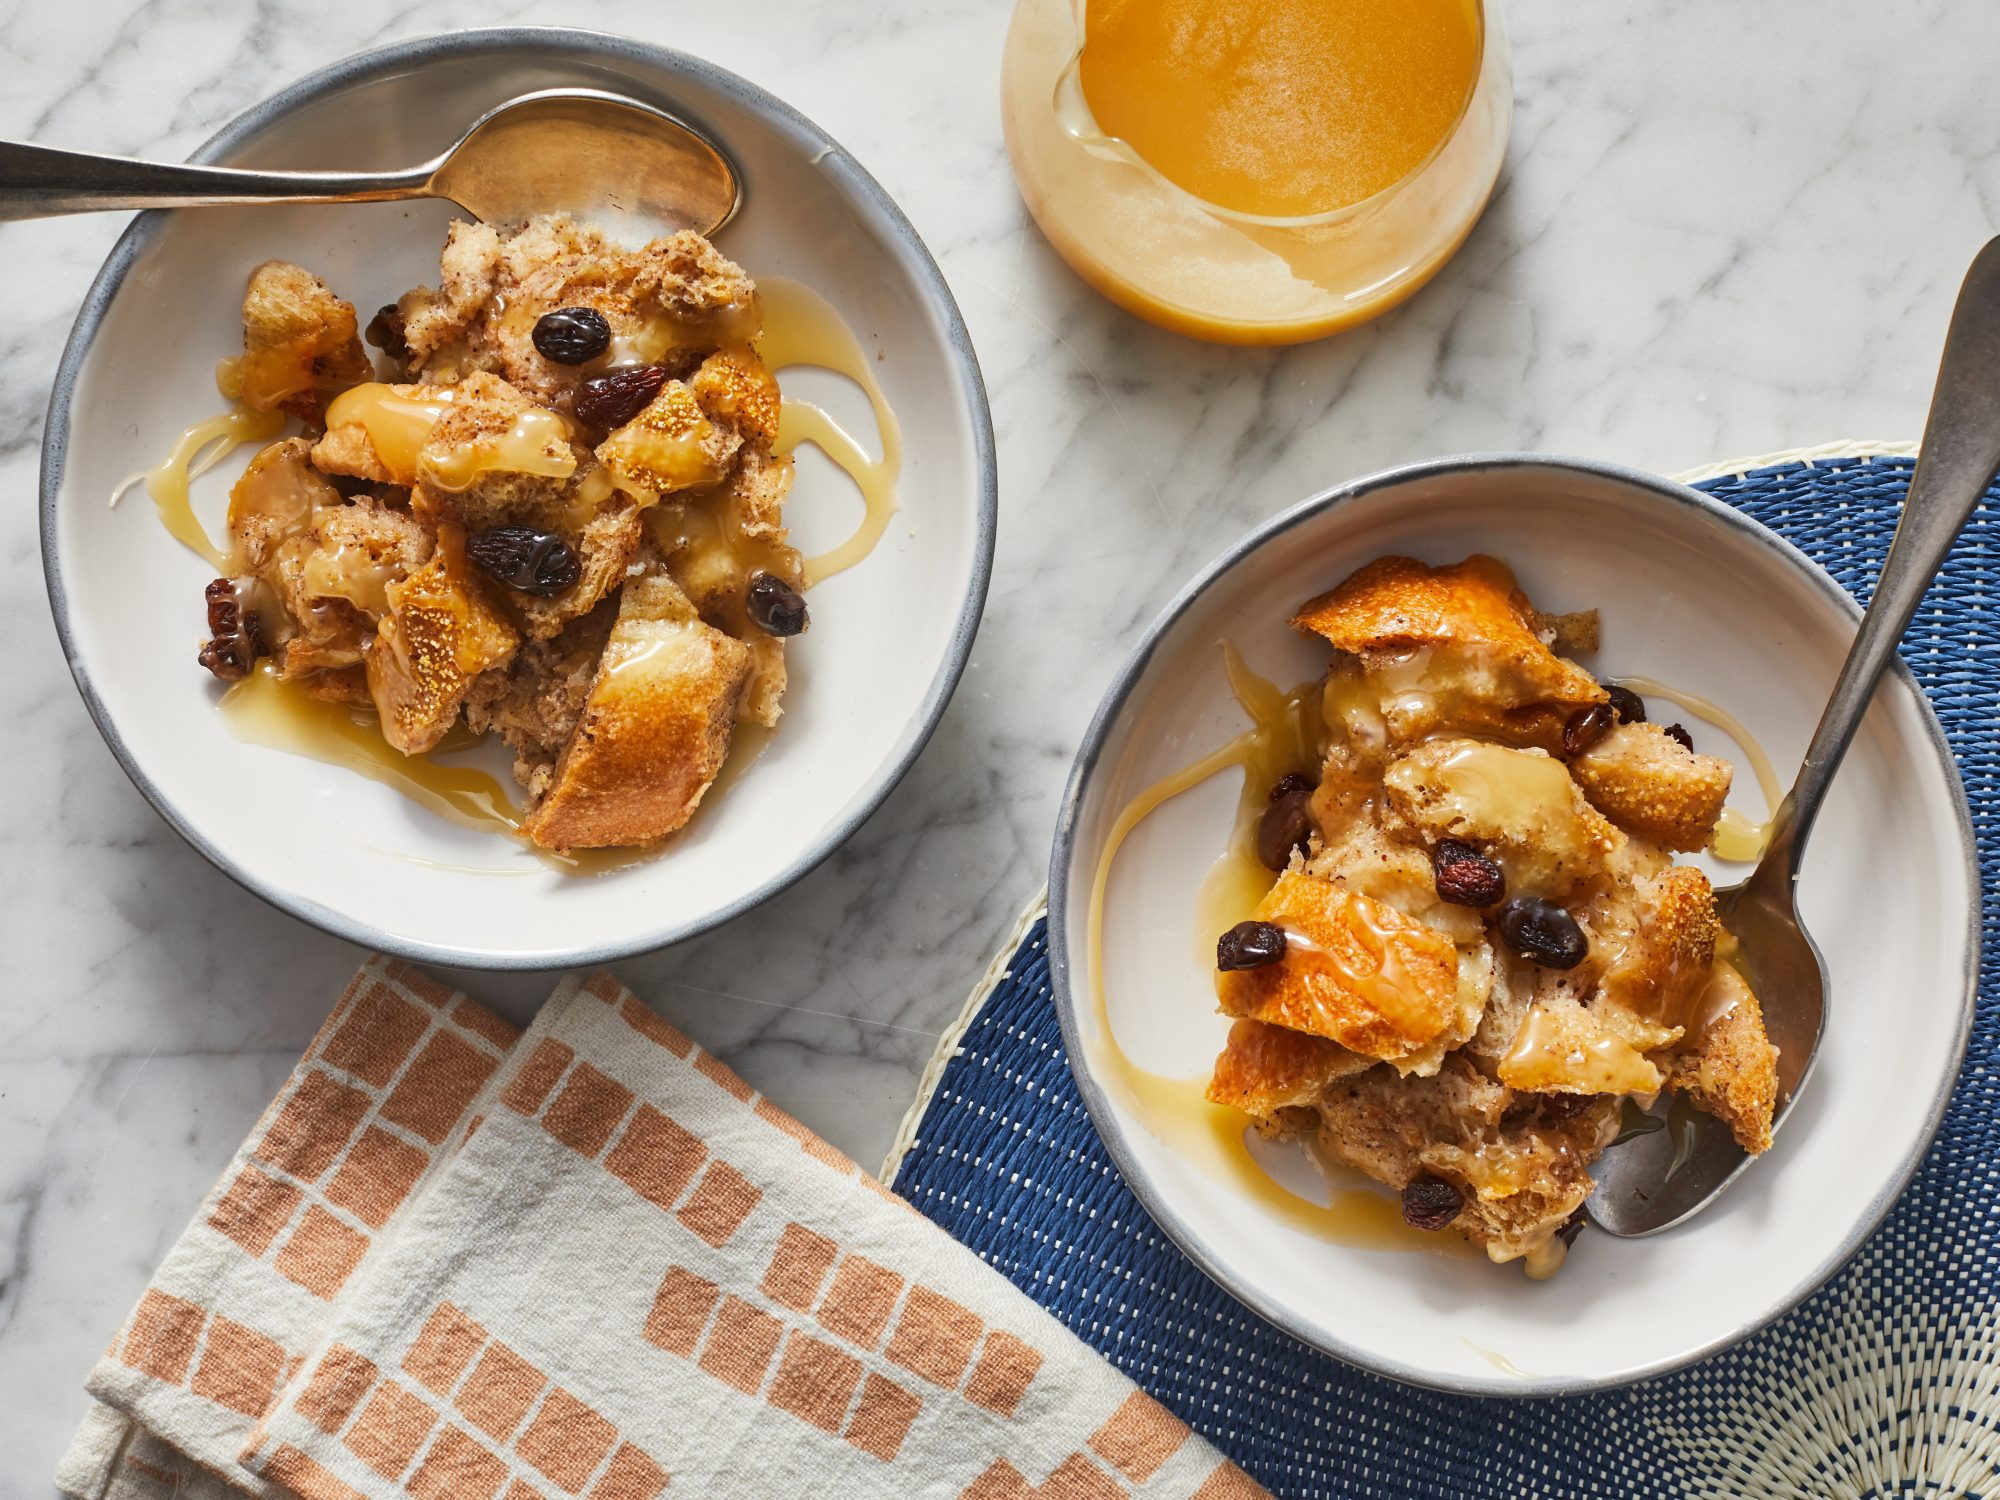 mr - New Orleans Bread Pudding With Bourbon Sauce Reshoot